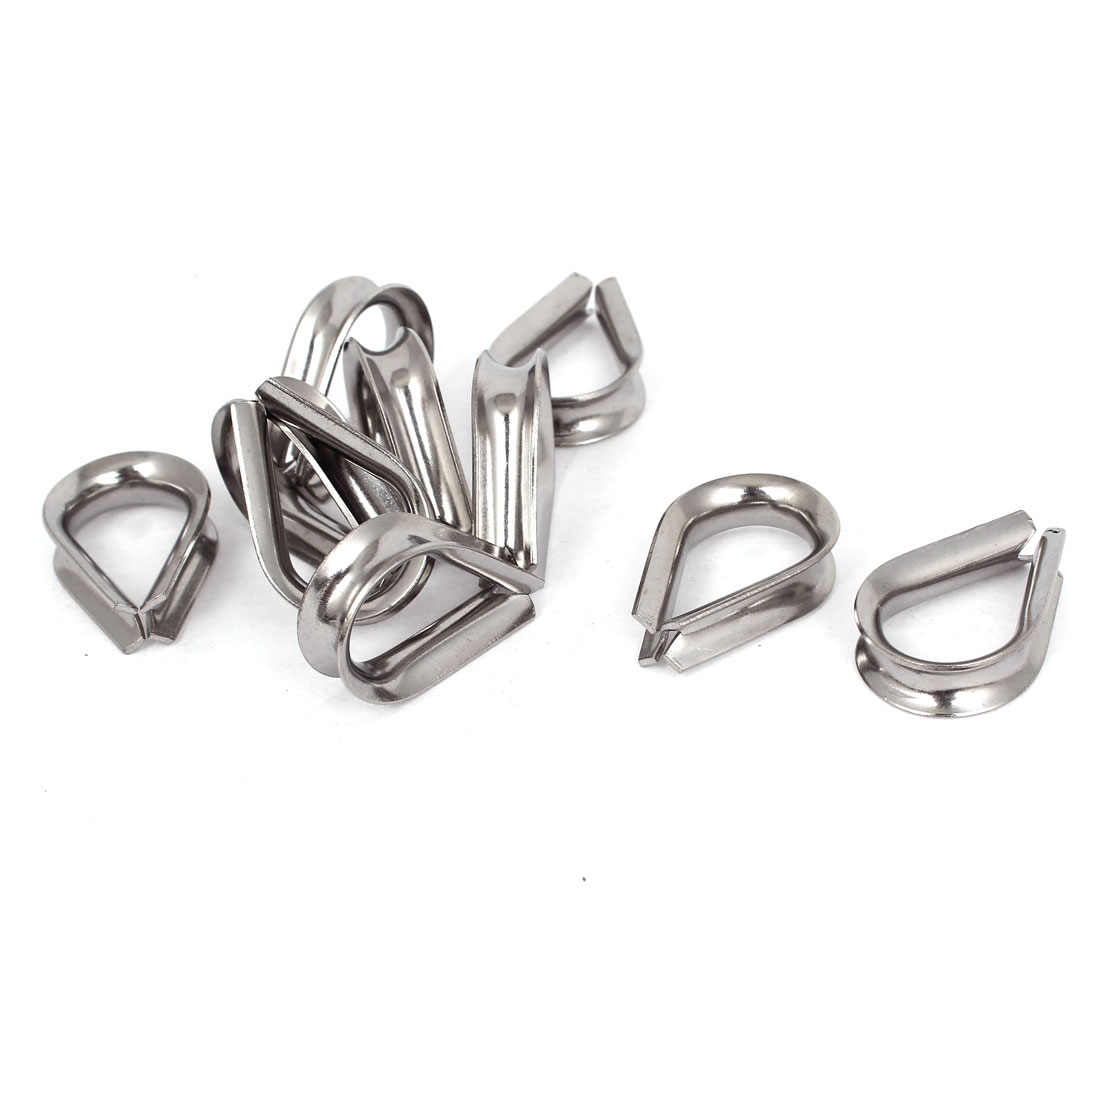 UXCELL 10Pcs Stainless Steel 6mm Standard Wire Rope Cable Thimbles Rigging Tool